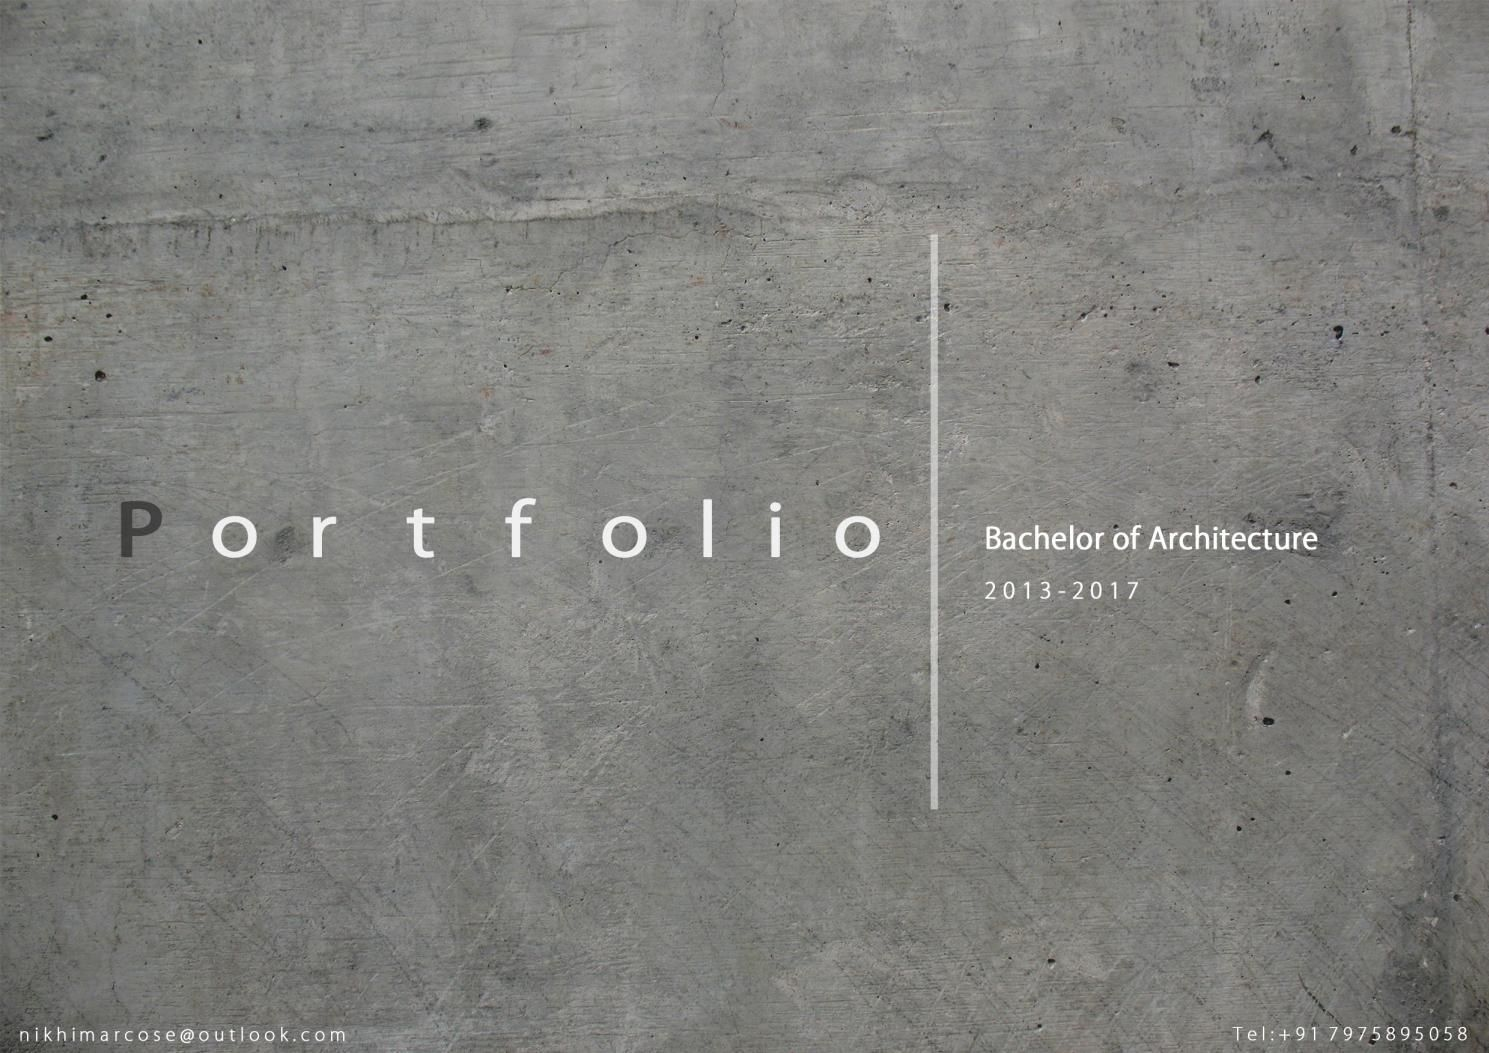 Architecture Portfolio - Issuu is a digital publishing platform with ... - Architecture P ... - Trend Award Design 2019